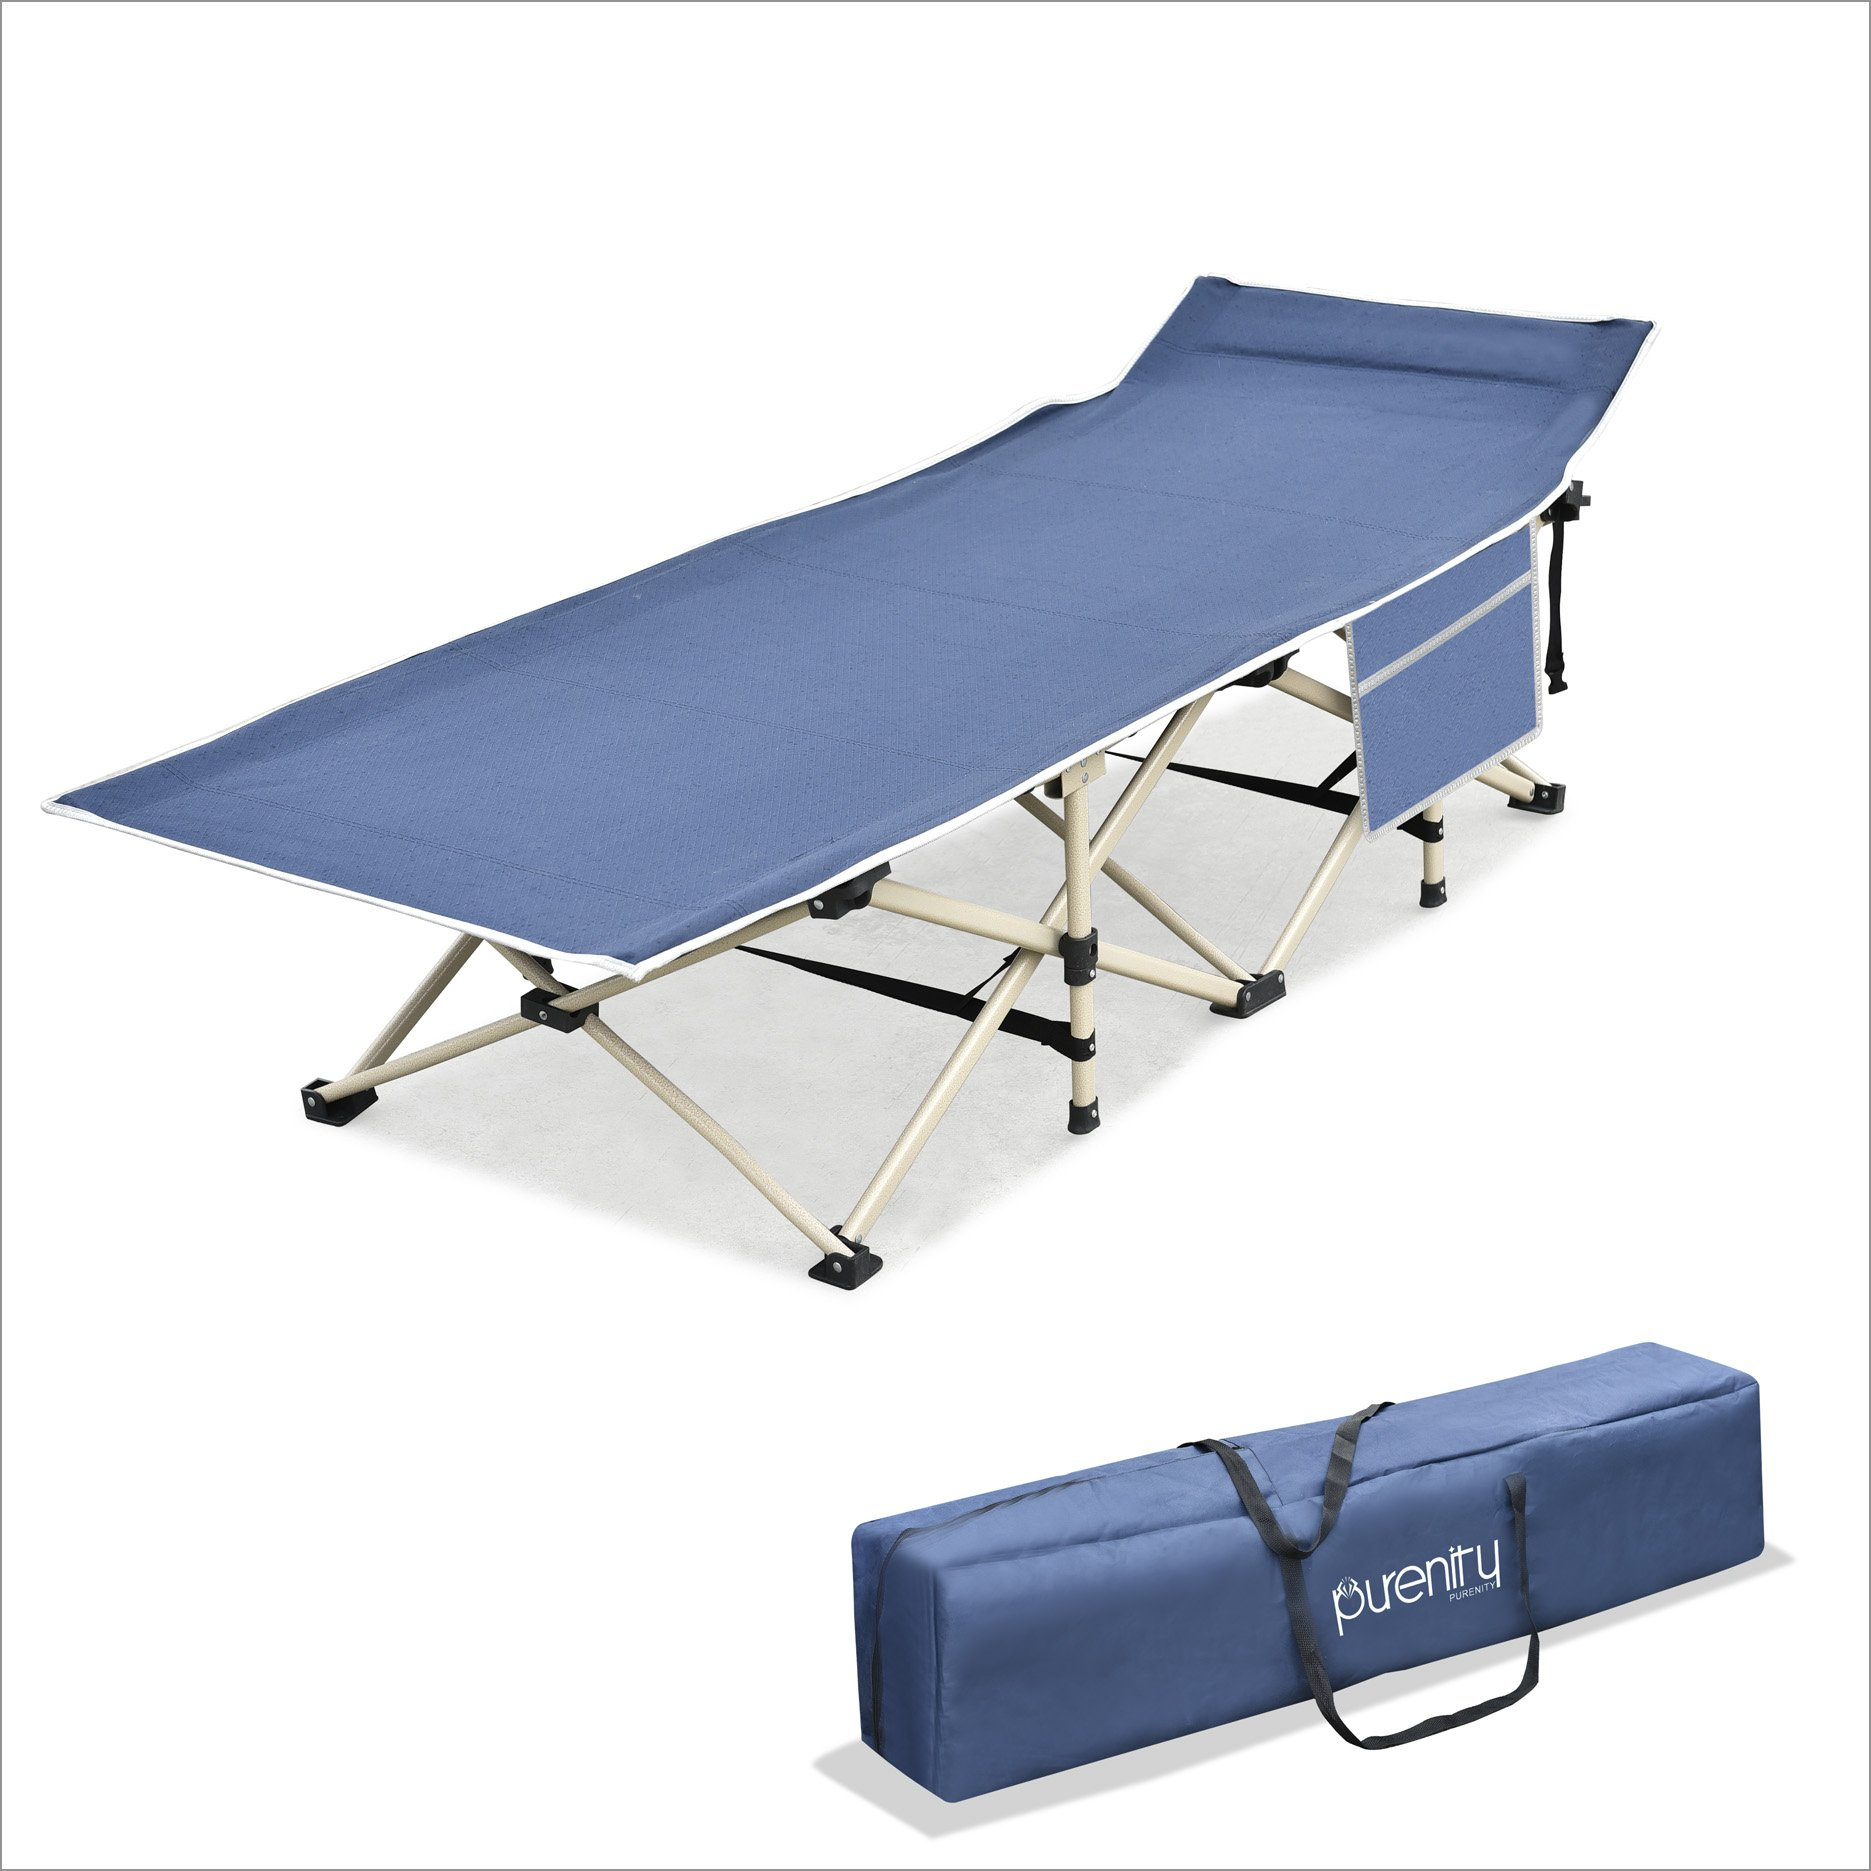 Purenity Stable Camping Cot Portable Folding Beach Bed with Decent Storage Bag (Dark Blue)